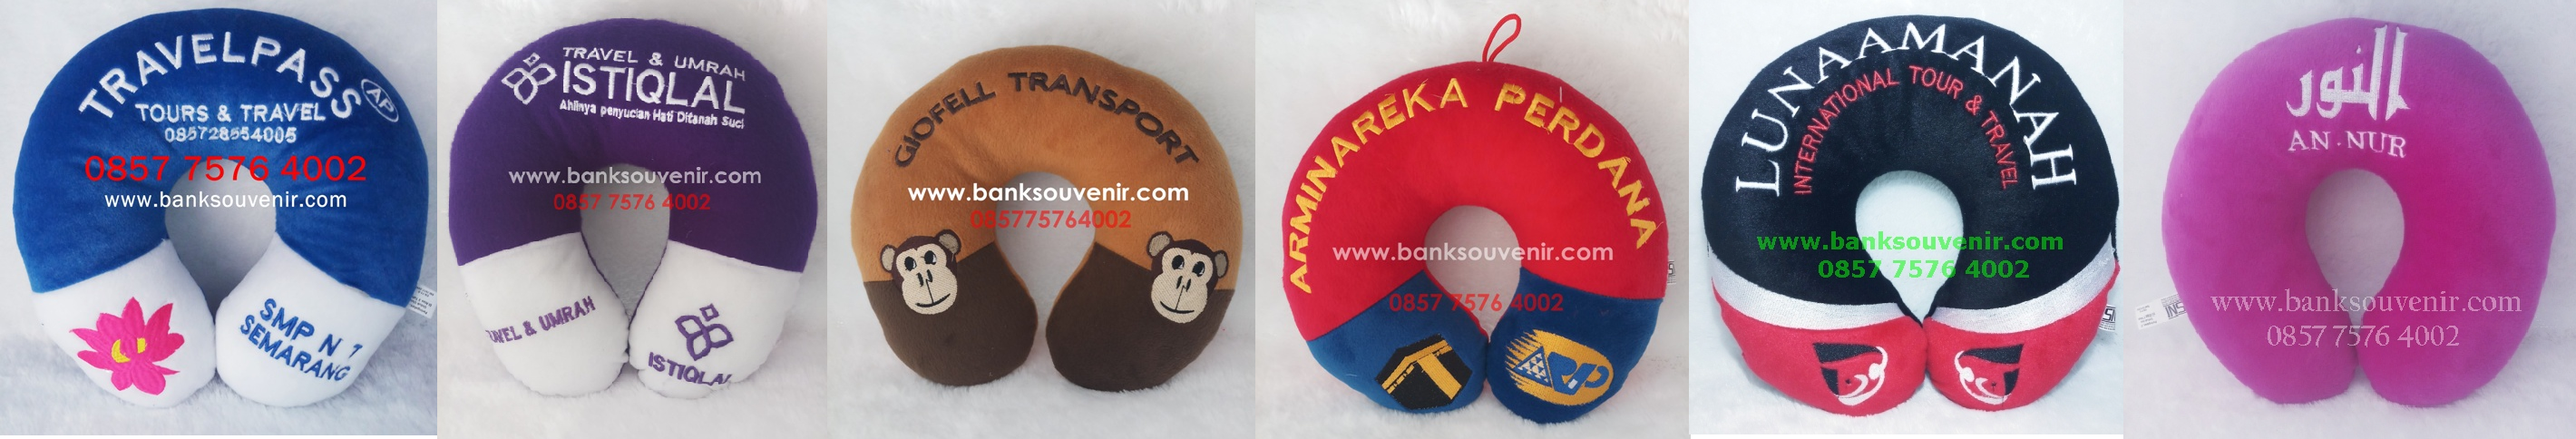 souvenir bantal leher tour travel